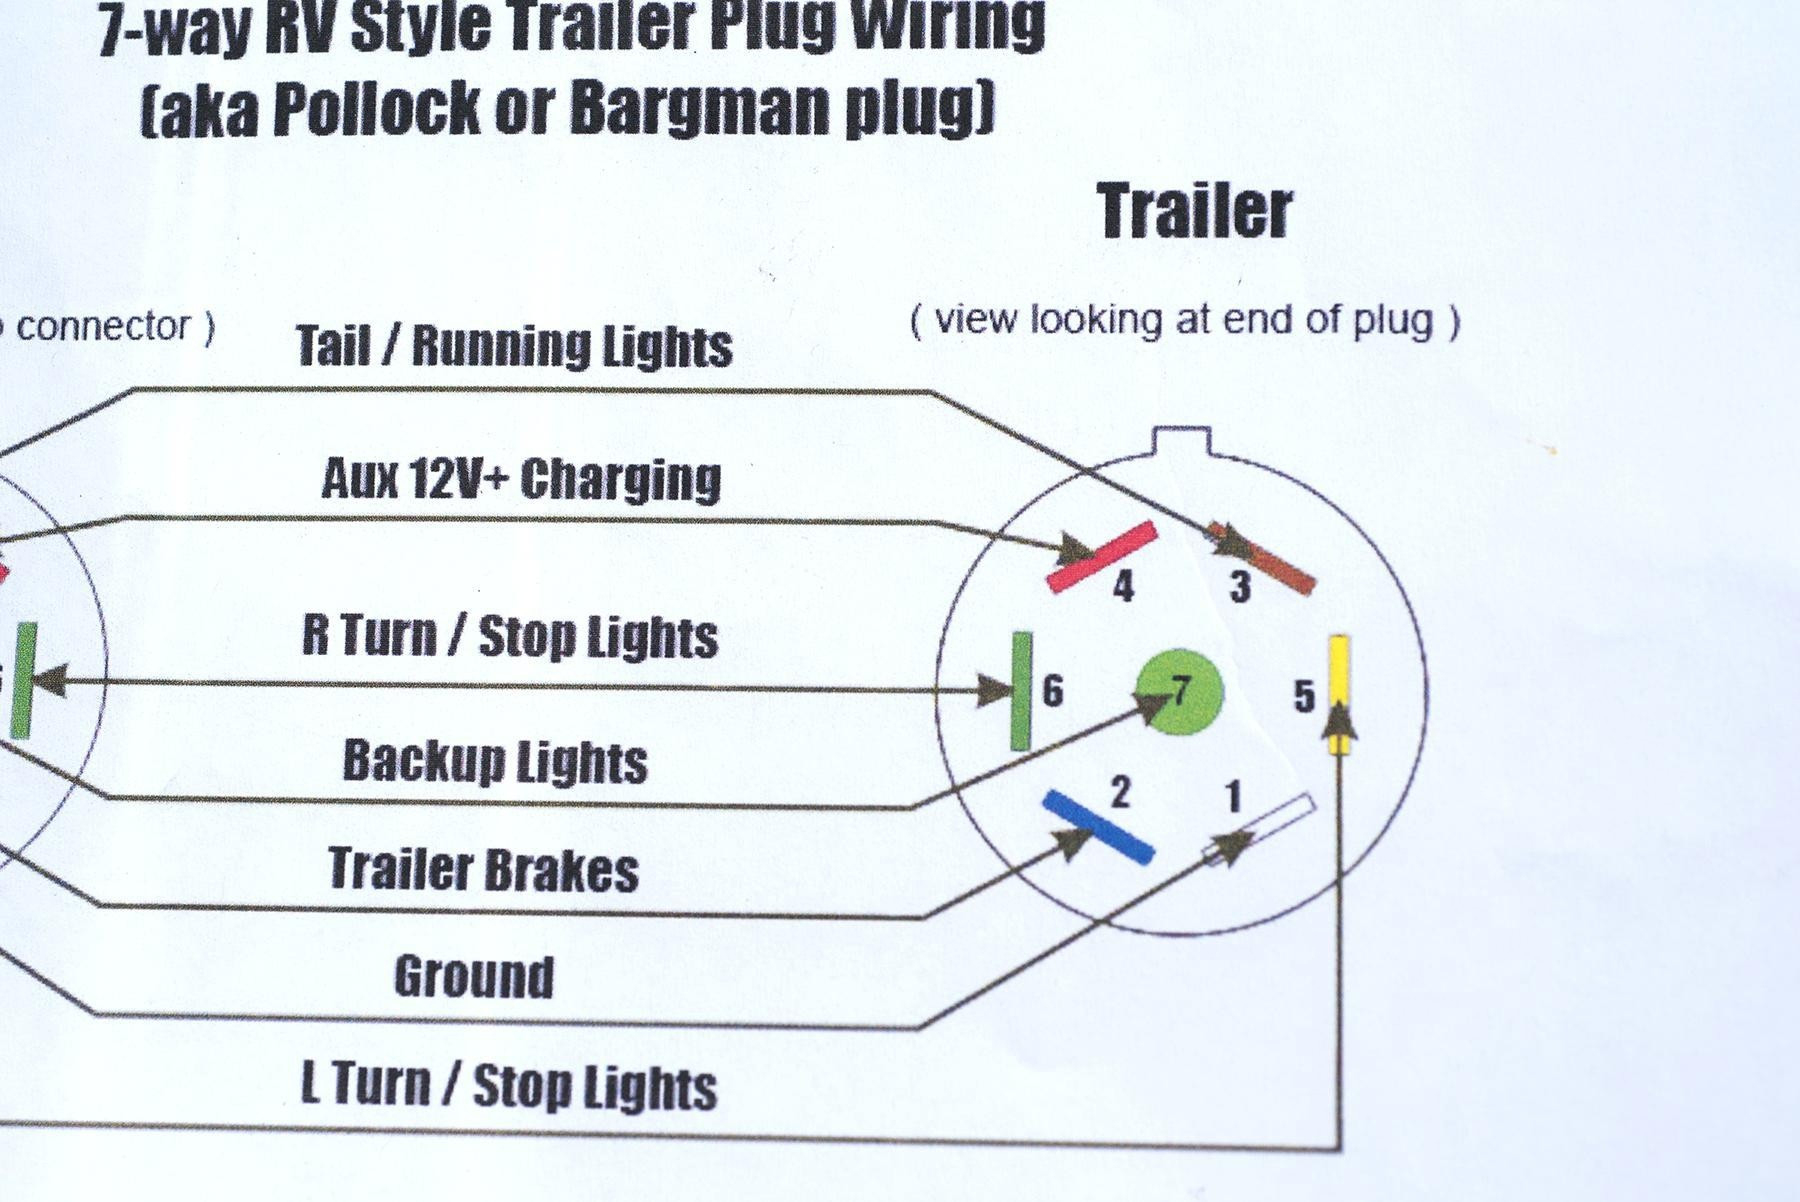 7 Pin Trailer Wiring Diagram Abs | Wiring Diagram  Pin Semi Trailer Abs Wiring Diagrams on tractor-trailer wiring diagram, semi tractor-trailer parts diagram, semi 7 pin trailer plug, semi-trailer tail light wiring diagram,